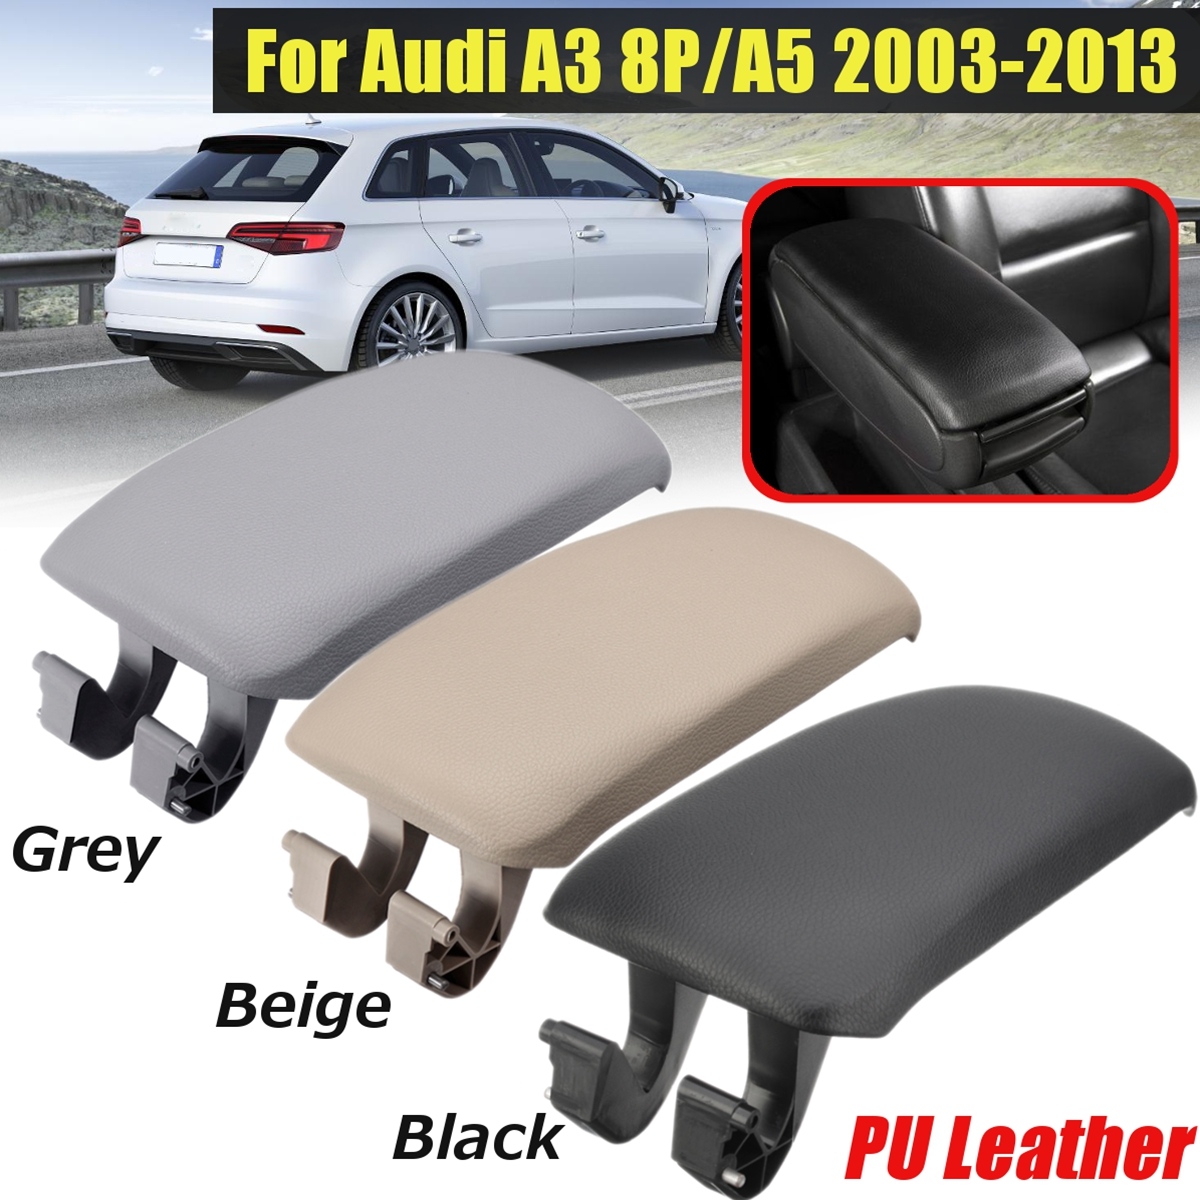 Gray Leather Armrest Center Console Arm Rest Cover For Audi A3 03-12 2008 2009